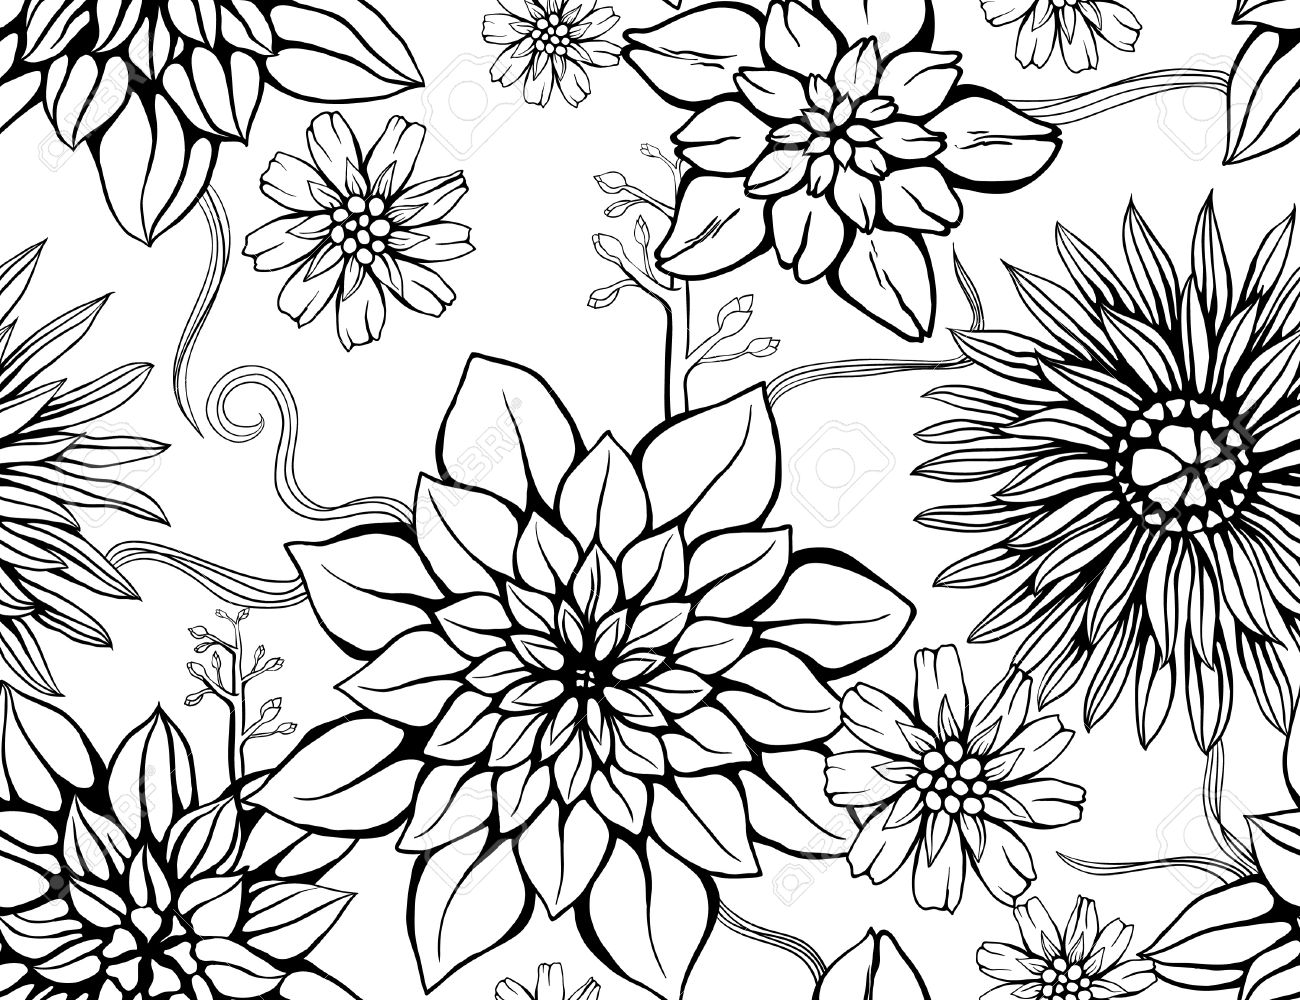 Flower Wallpaper Drawing At Getdrawings Free For Personal Use